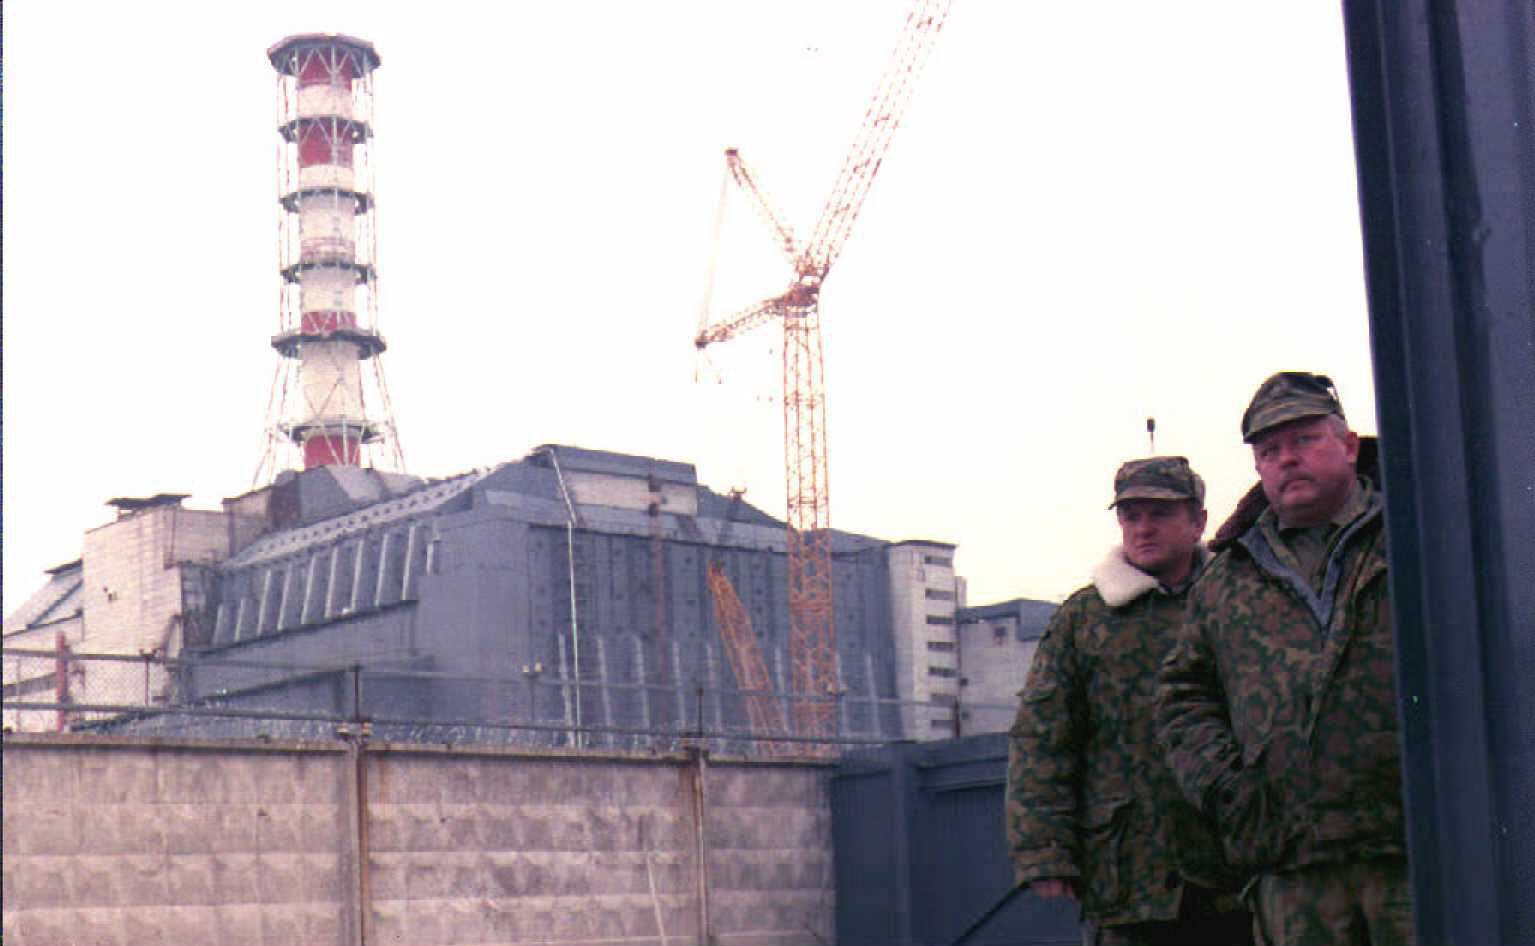 Security personnel guard the entrance of the Chernobyl Nuclear Power Plant, near Pripyat, Ukraine, in 1996. (AFP)